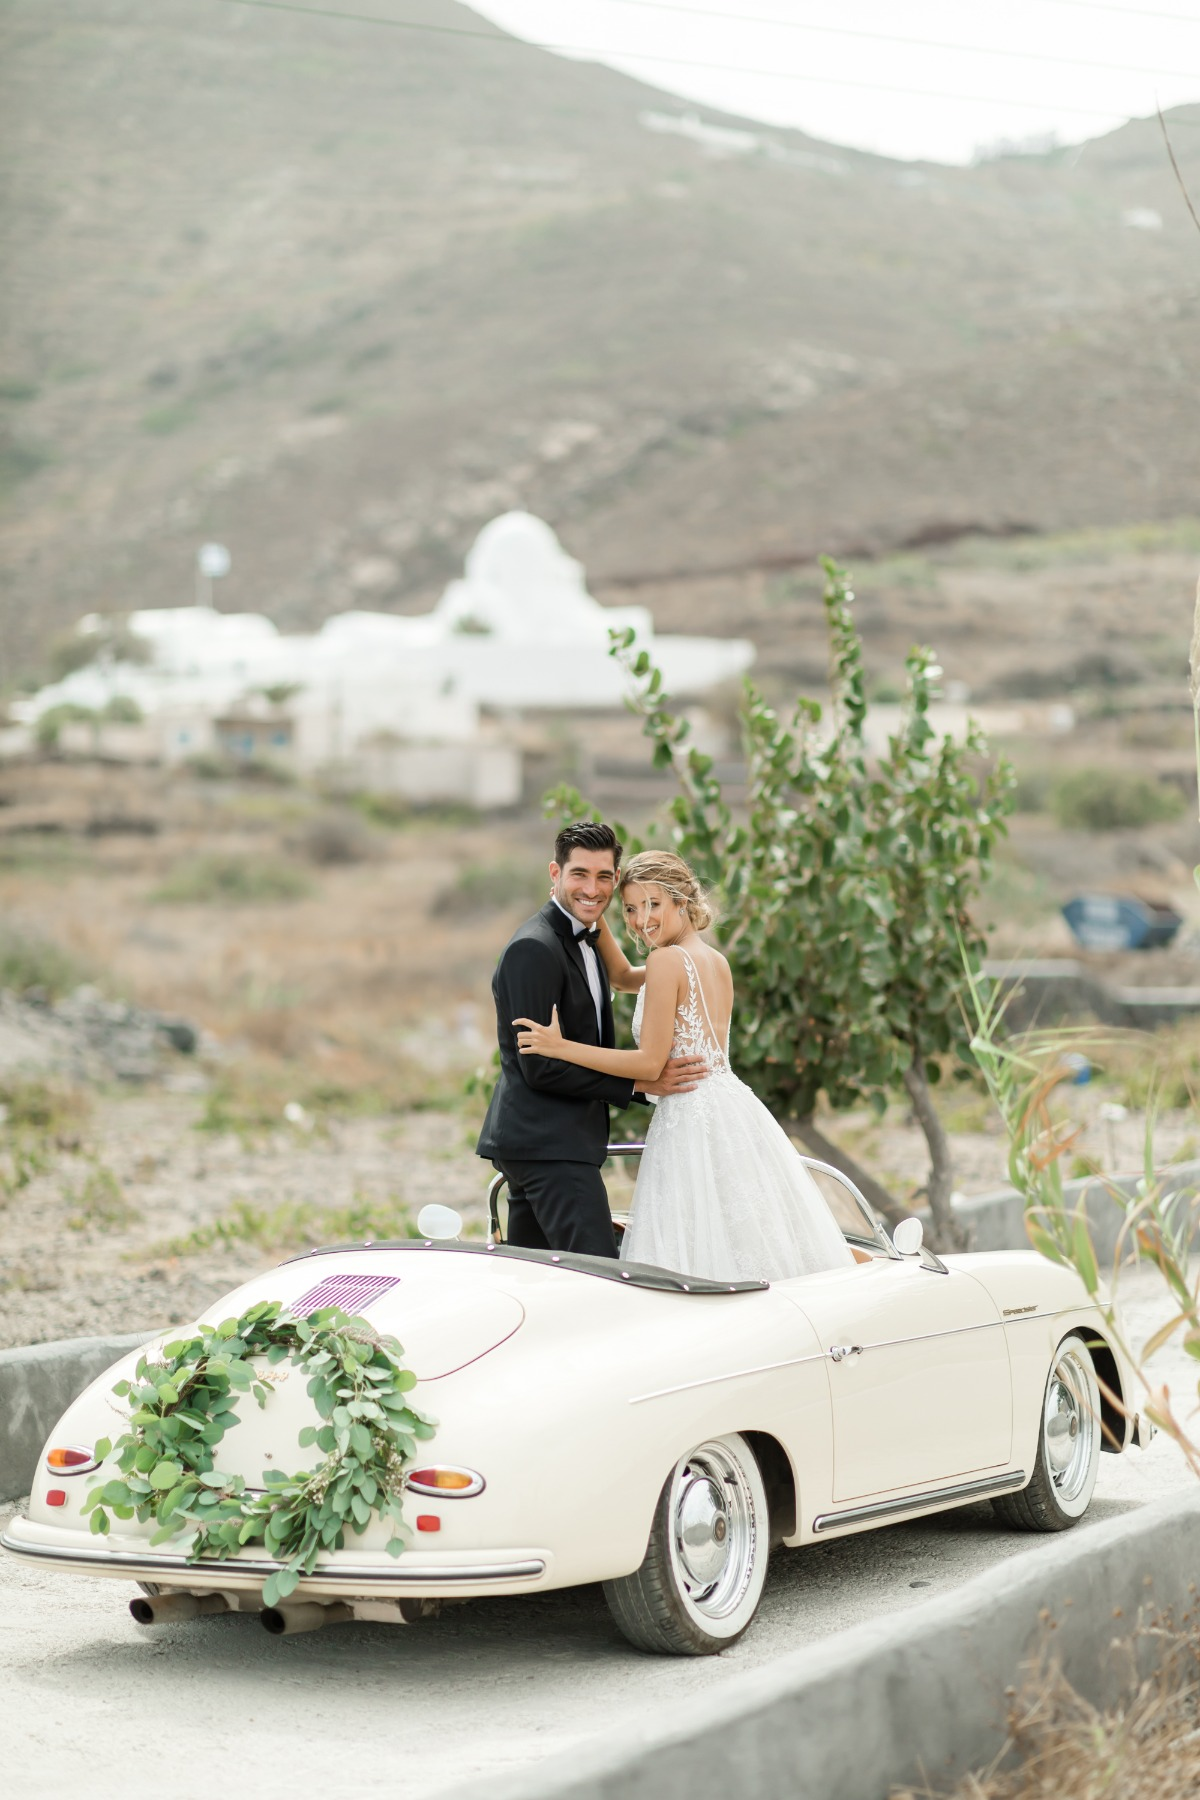 The Magic of the Silver Crescent Inspired Elopement in Santorini